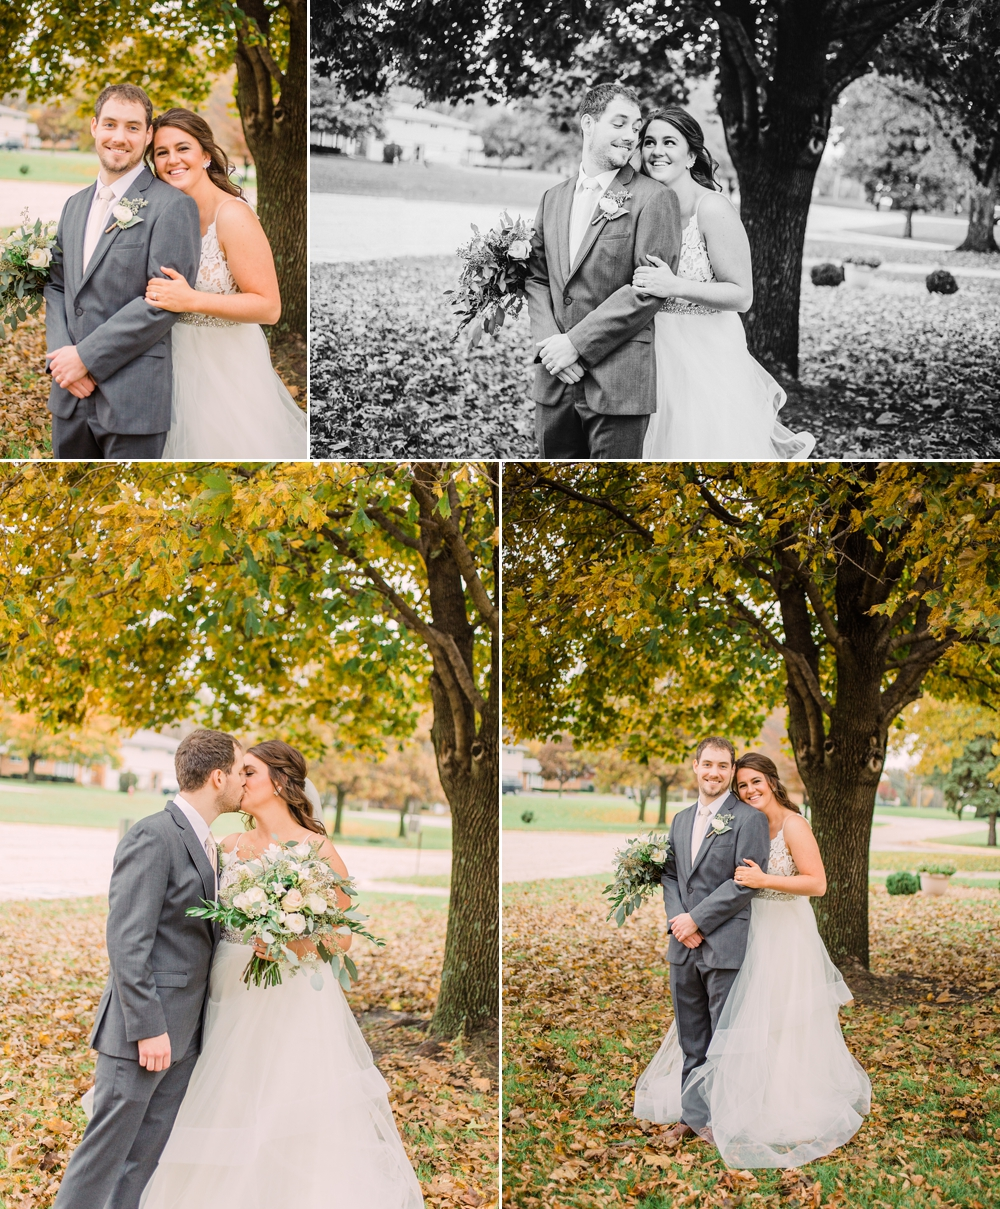 Wedding Photography_Our Saviors Lutheran Church_Humboldt Iowa_bride and groom portraits under fall leaves_Iowa Wedding Photographer.jpg